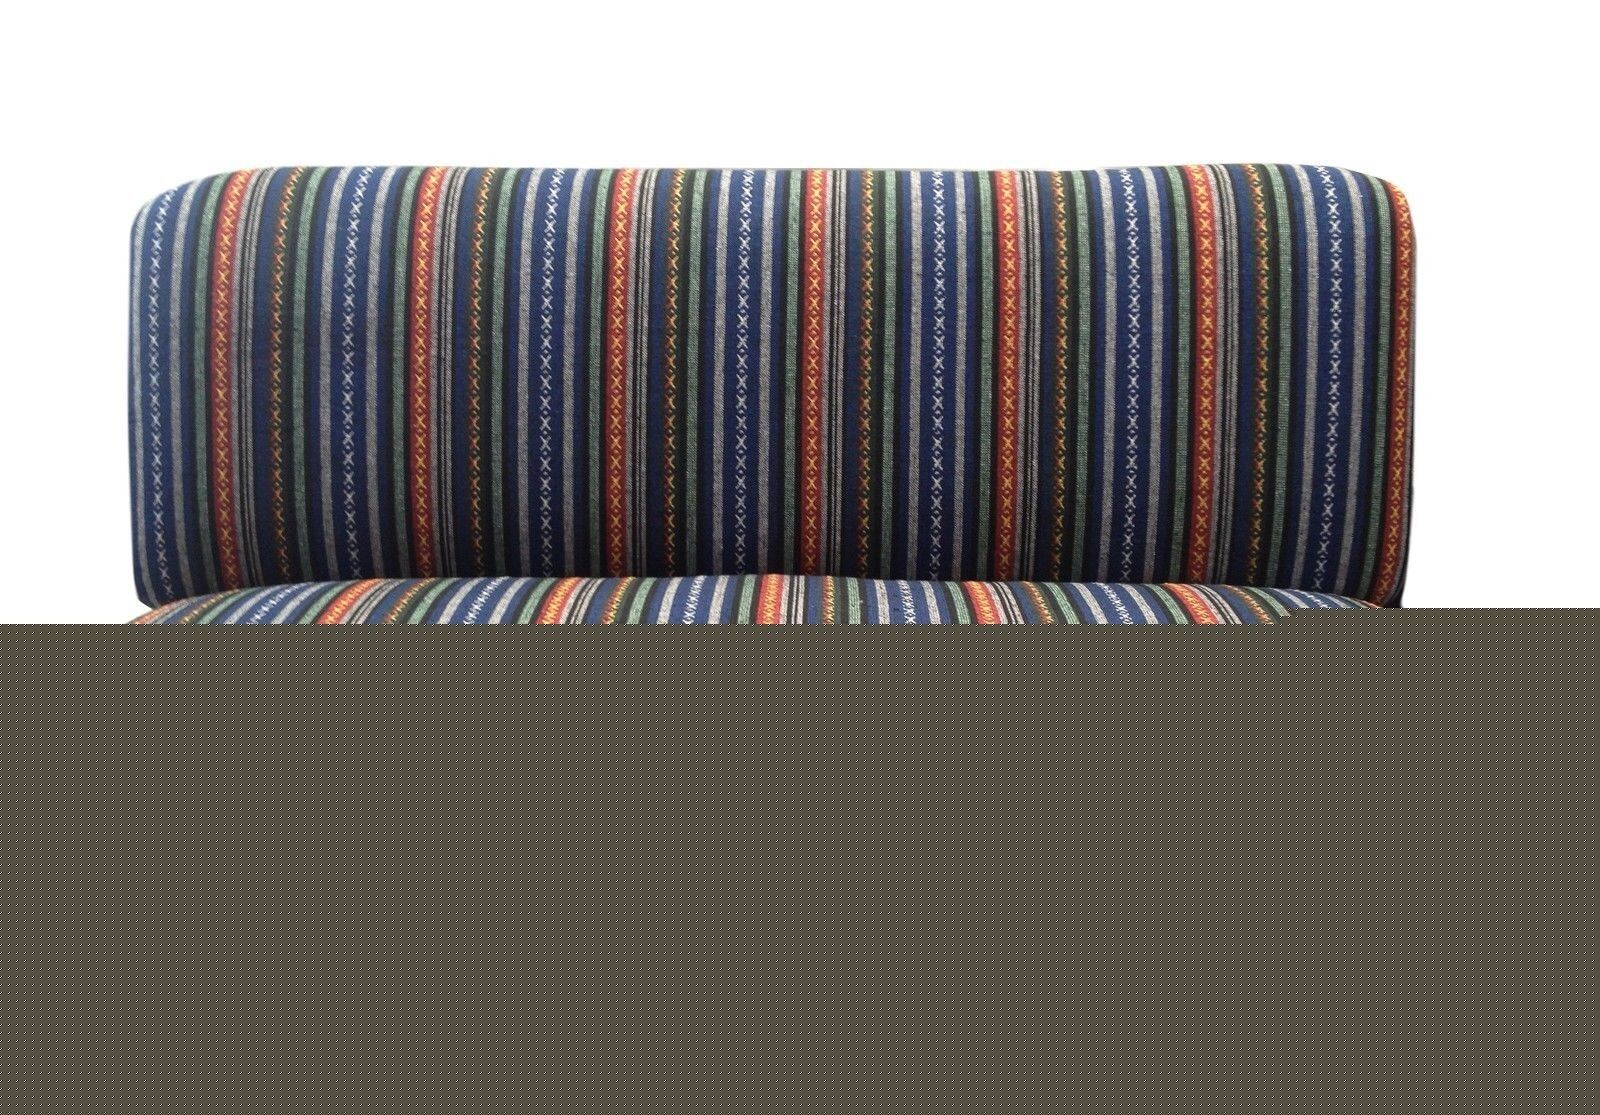 Baja Saddle Blanket Bench Seat Cover Row Full Size Ford